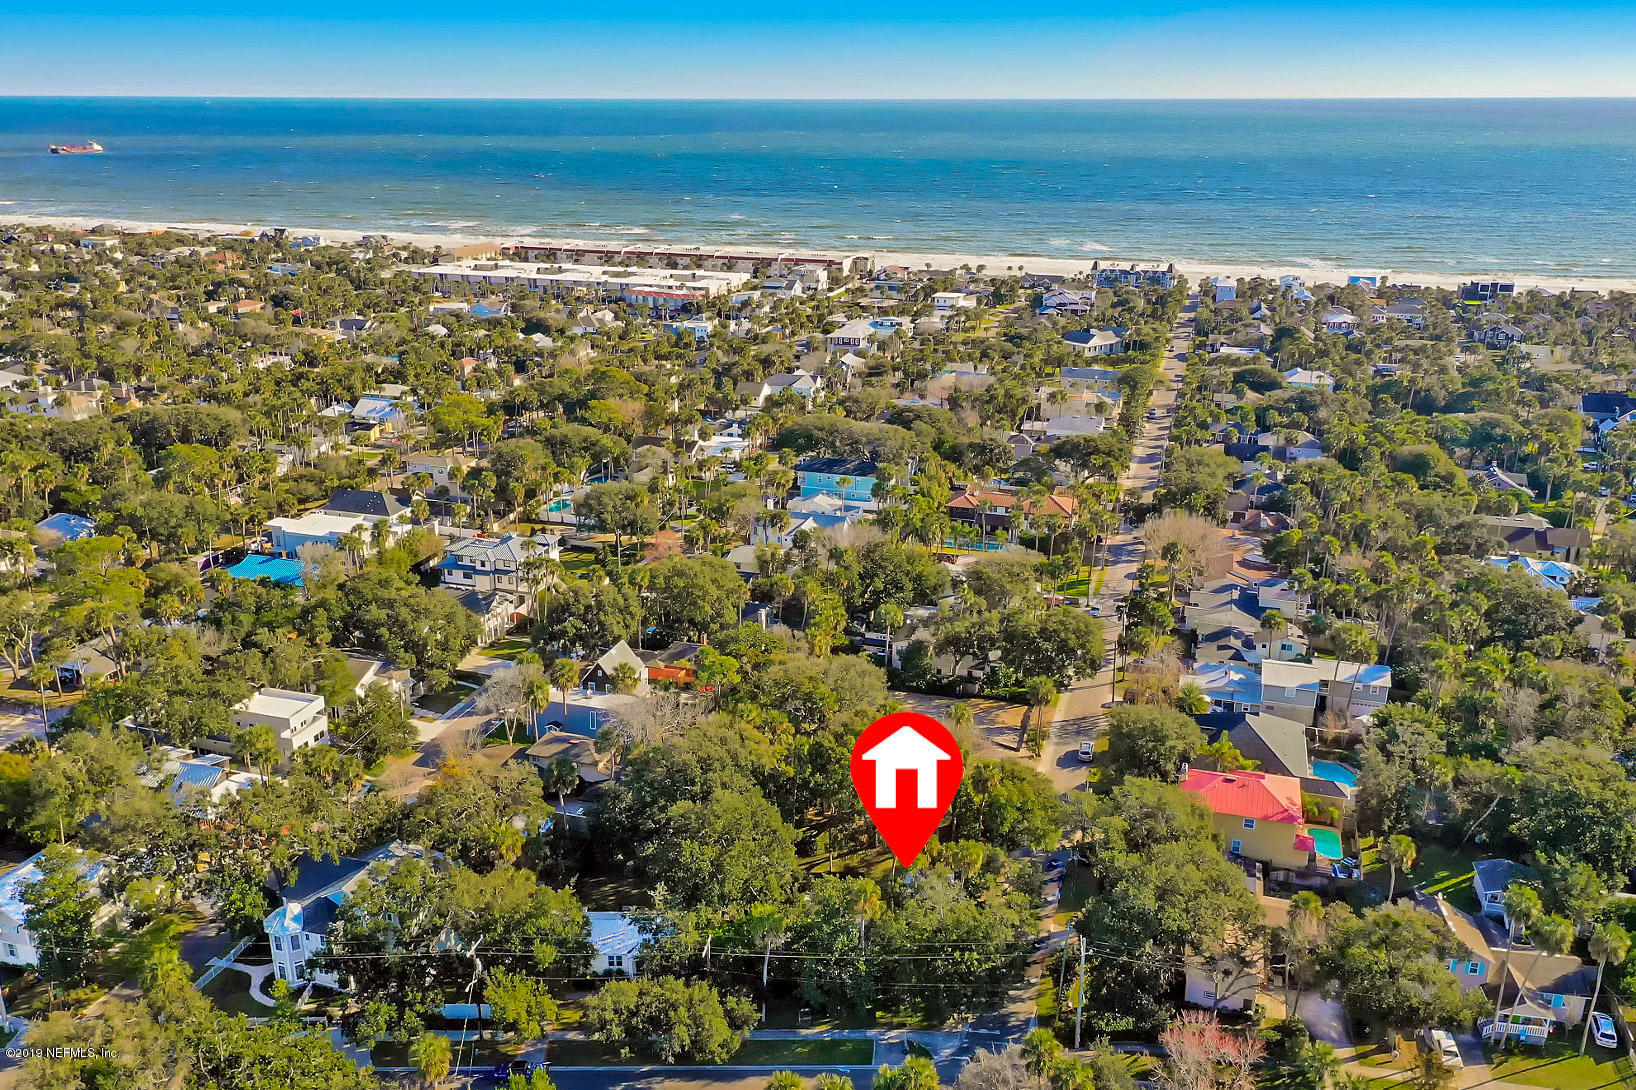 723 SHERRY, ATLANTIC BEACH, FLORIDA 32233, 4 Bedrooms Bedrooms, ,2 BathroomsBathrooms,Residential - single family,For sale,SHERRY,974490